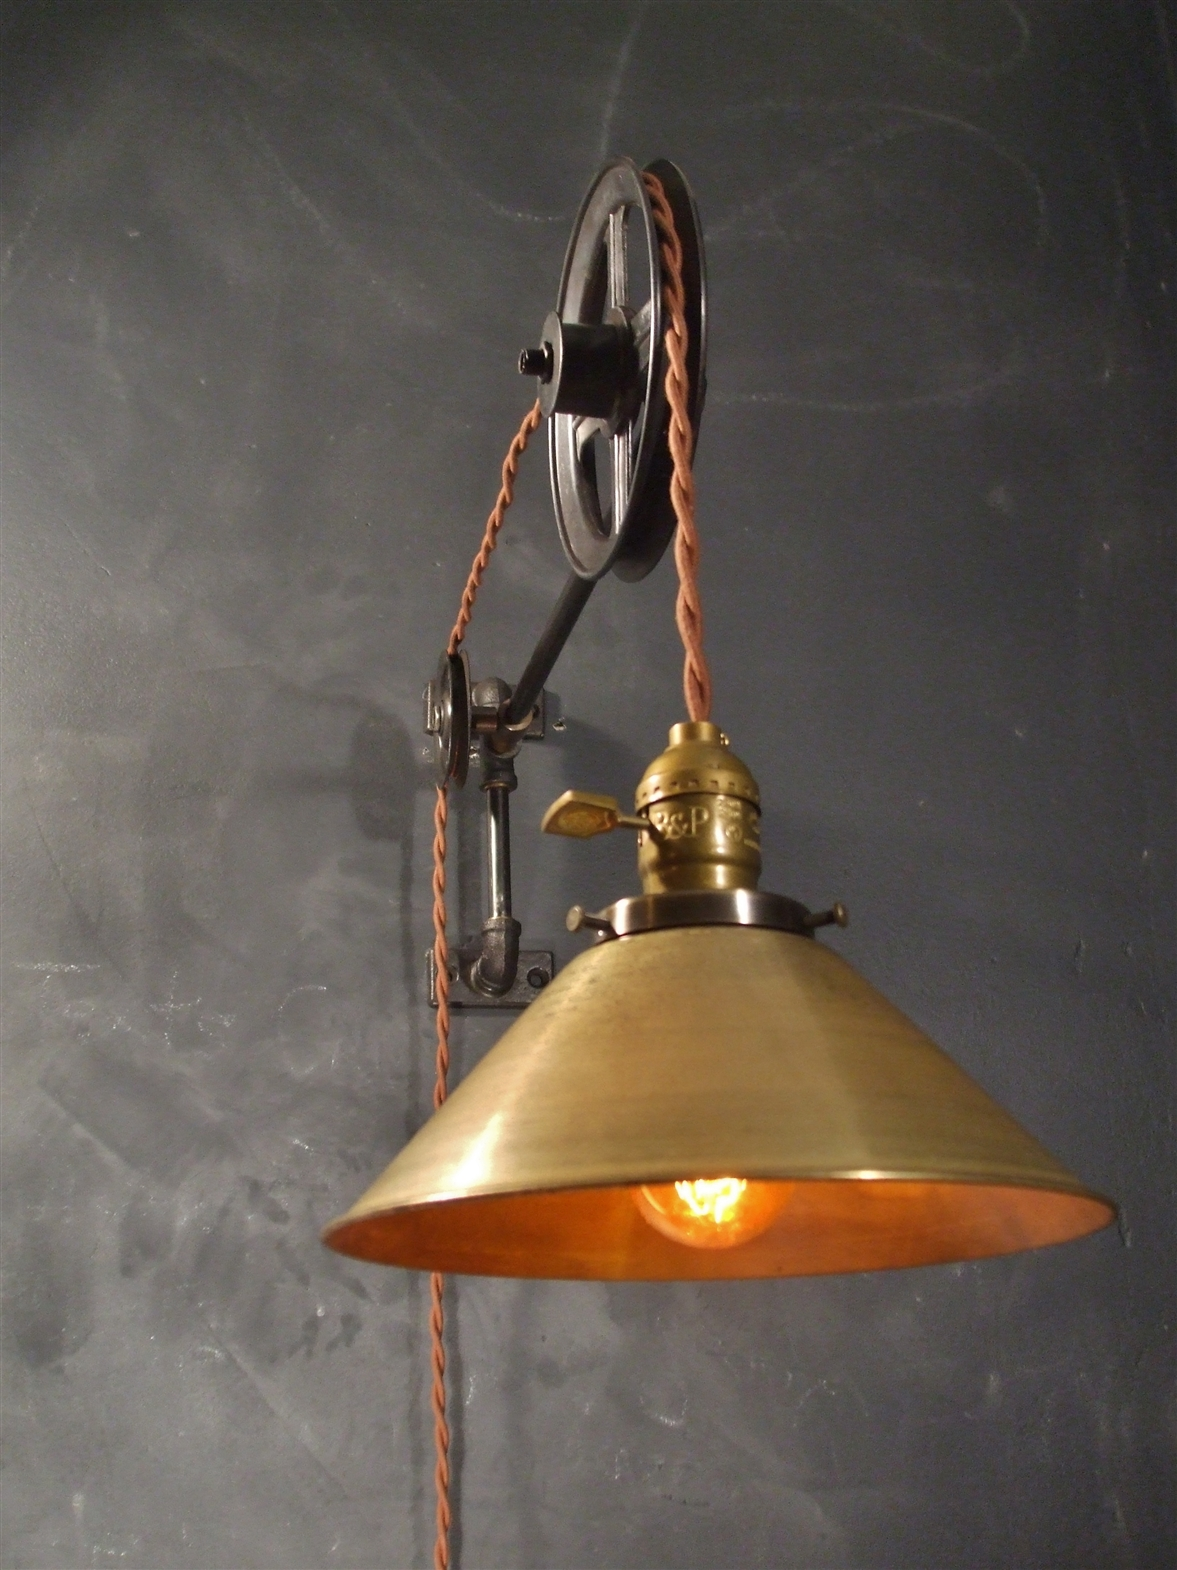 Vintage industrial style pulley lamp from dw vintage lighting co